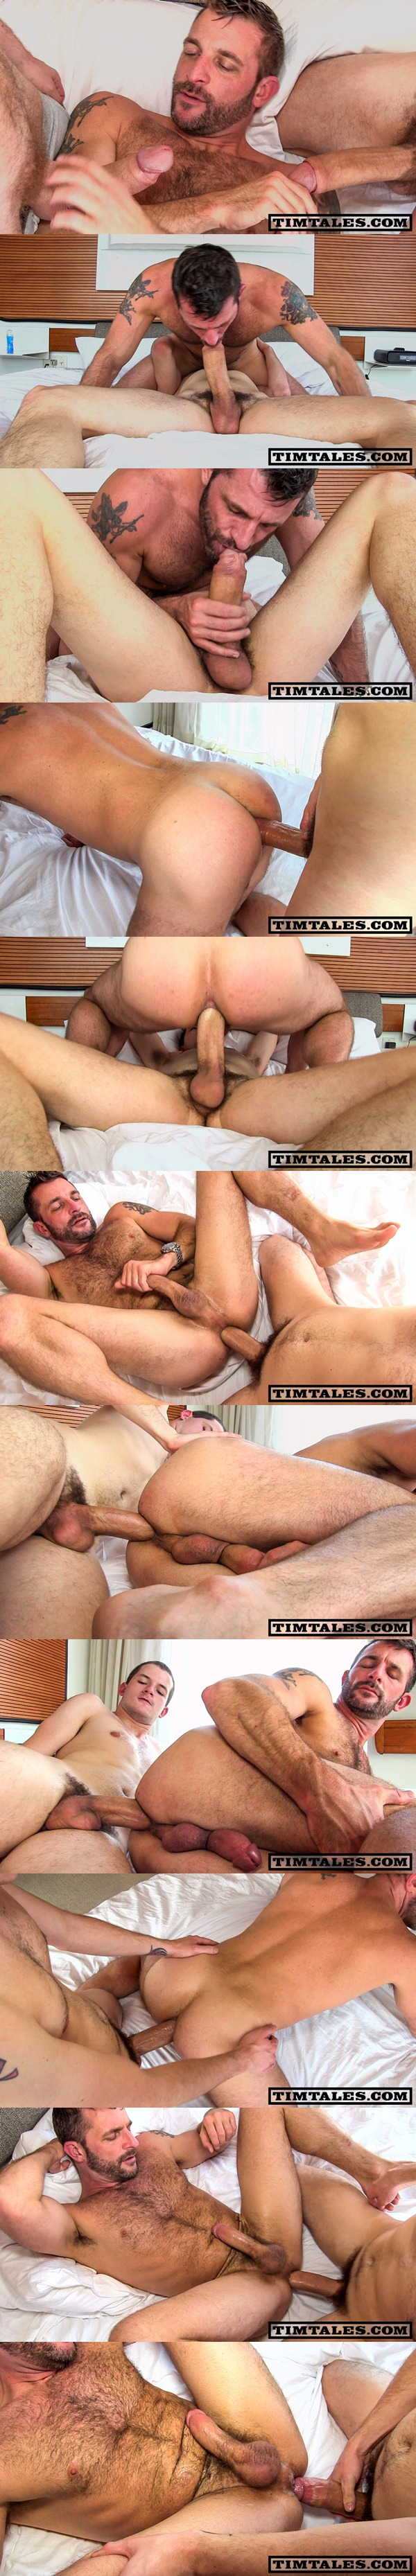 Horse-hung Devin Moss Barebacks scruffy handsome Morgan Black and breeds his muscle ass at Timtales 01